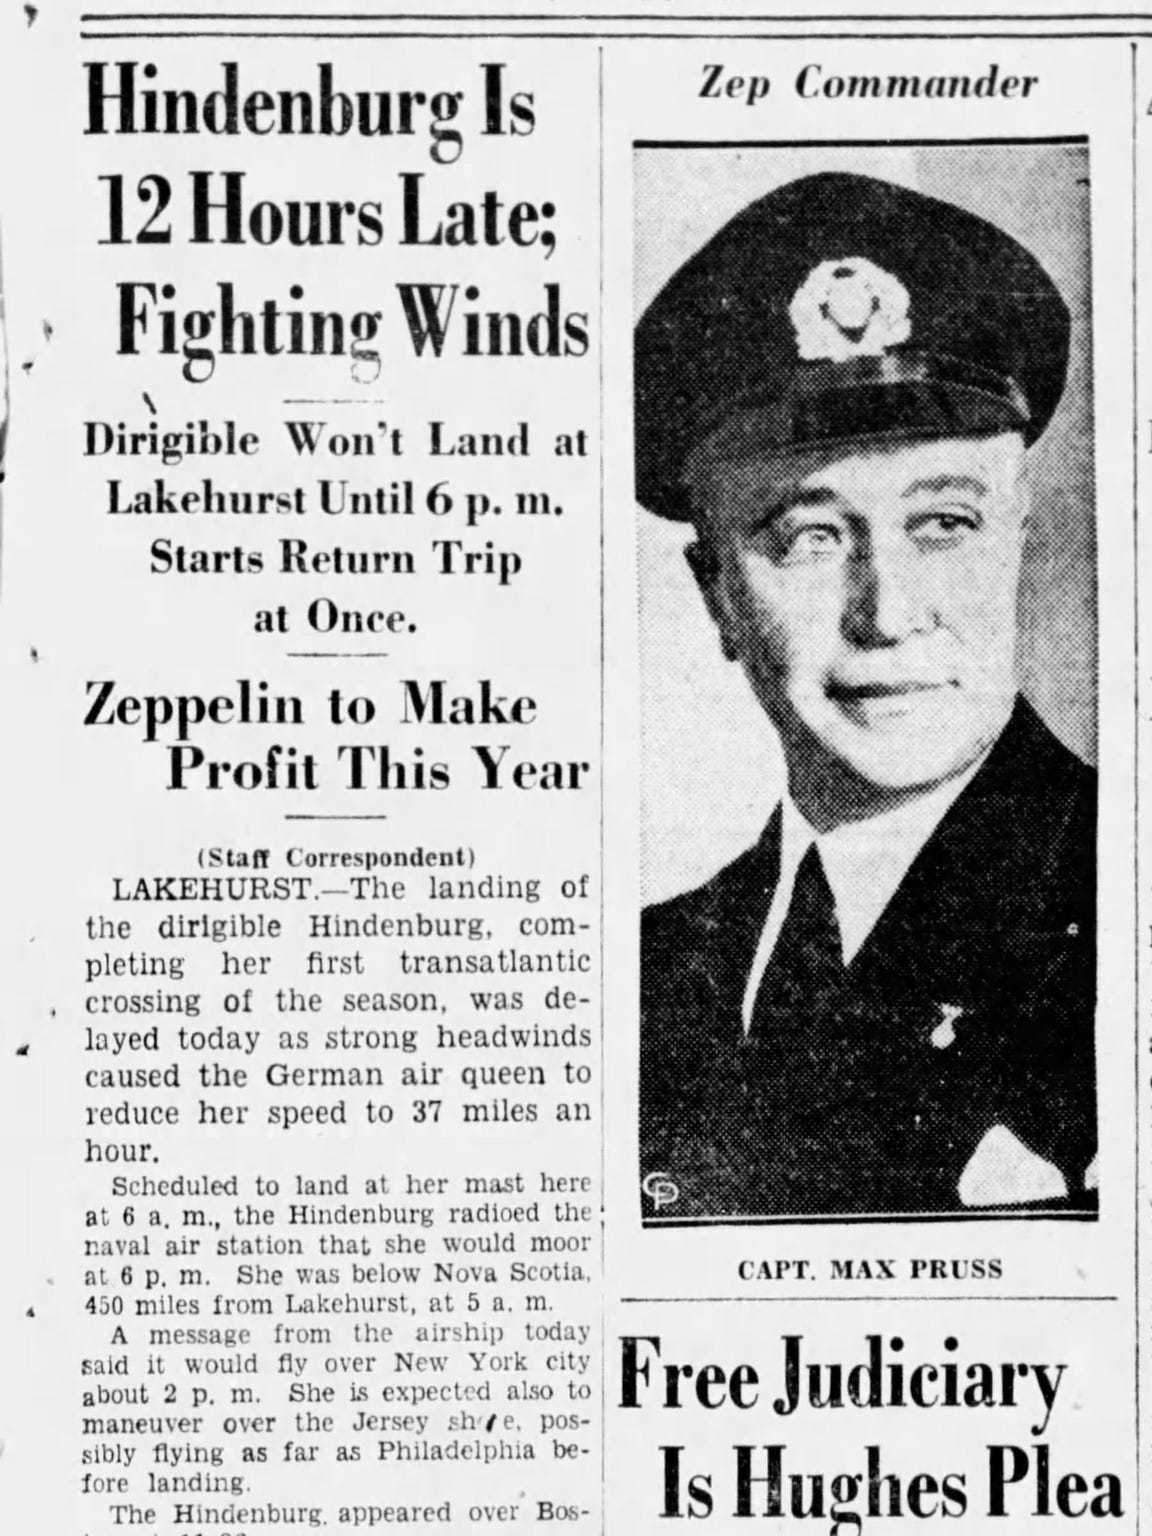 Asbury Park Press front page article from May 6, 1937, informing readers that the Hindenburg would be delayed at least 12 hours.